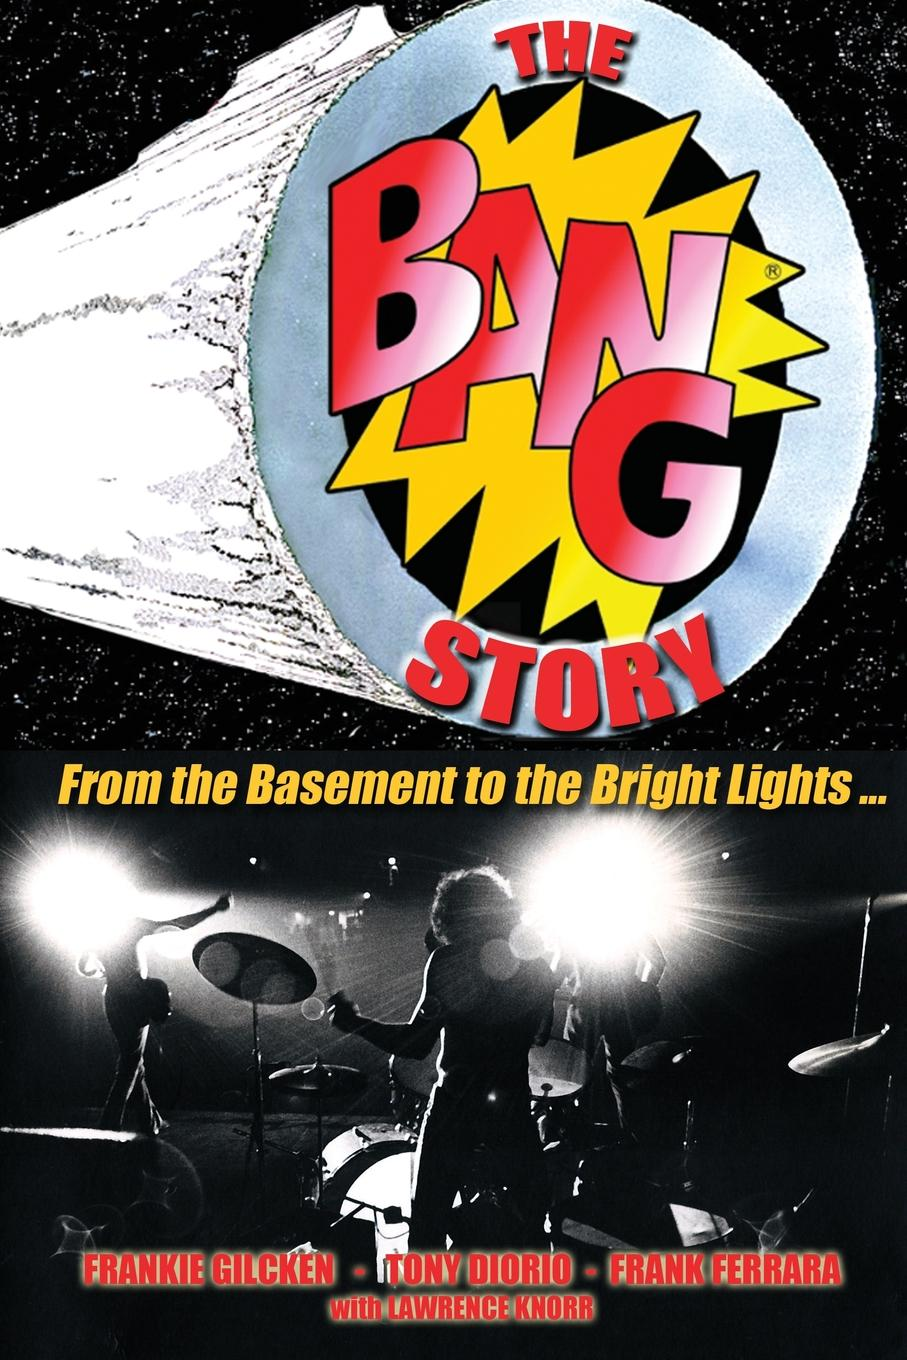 Lawrence Knorr, Frank Ferrara, Tony Diorio The BANG Story. From the Basement to the Bright Lights frank turner and the sleeping souls lingen ems